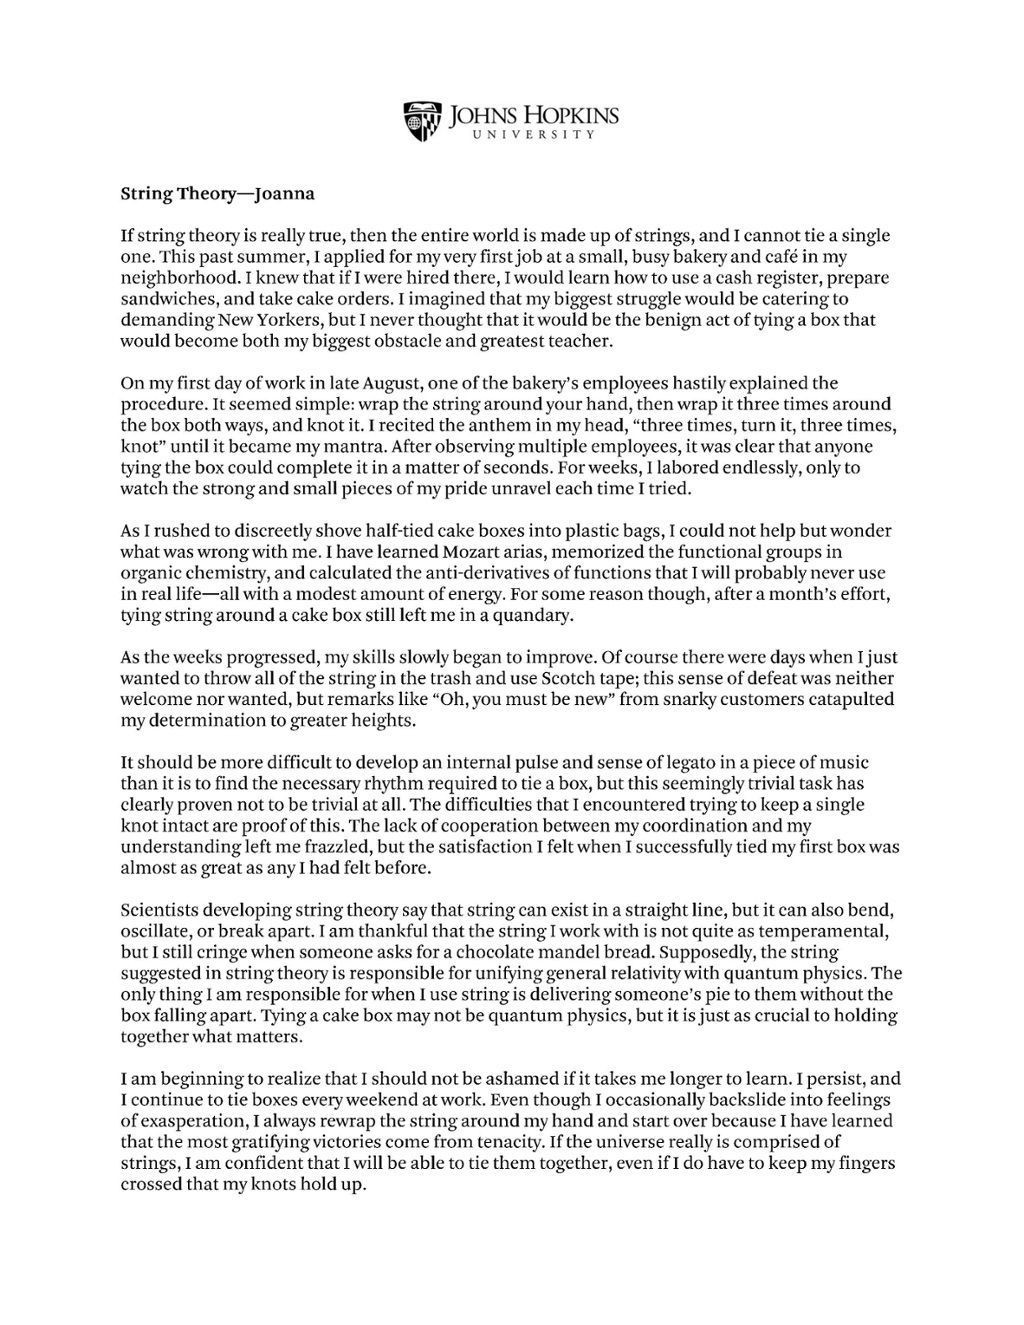 009 Impressive College Essay Format Example Idea  Examples Writing Application Sample AdmissionLarge